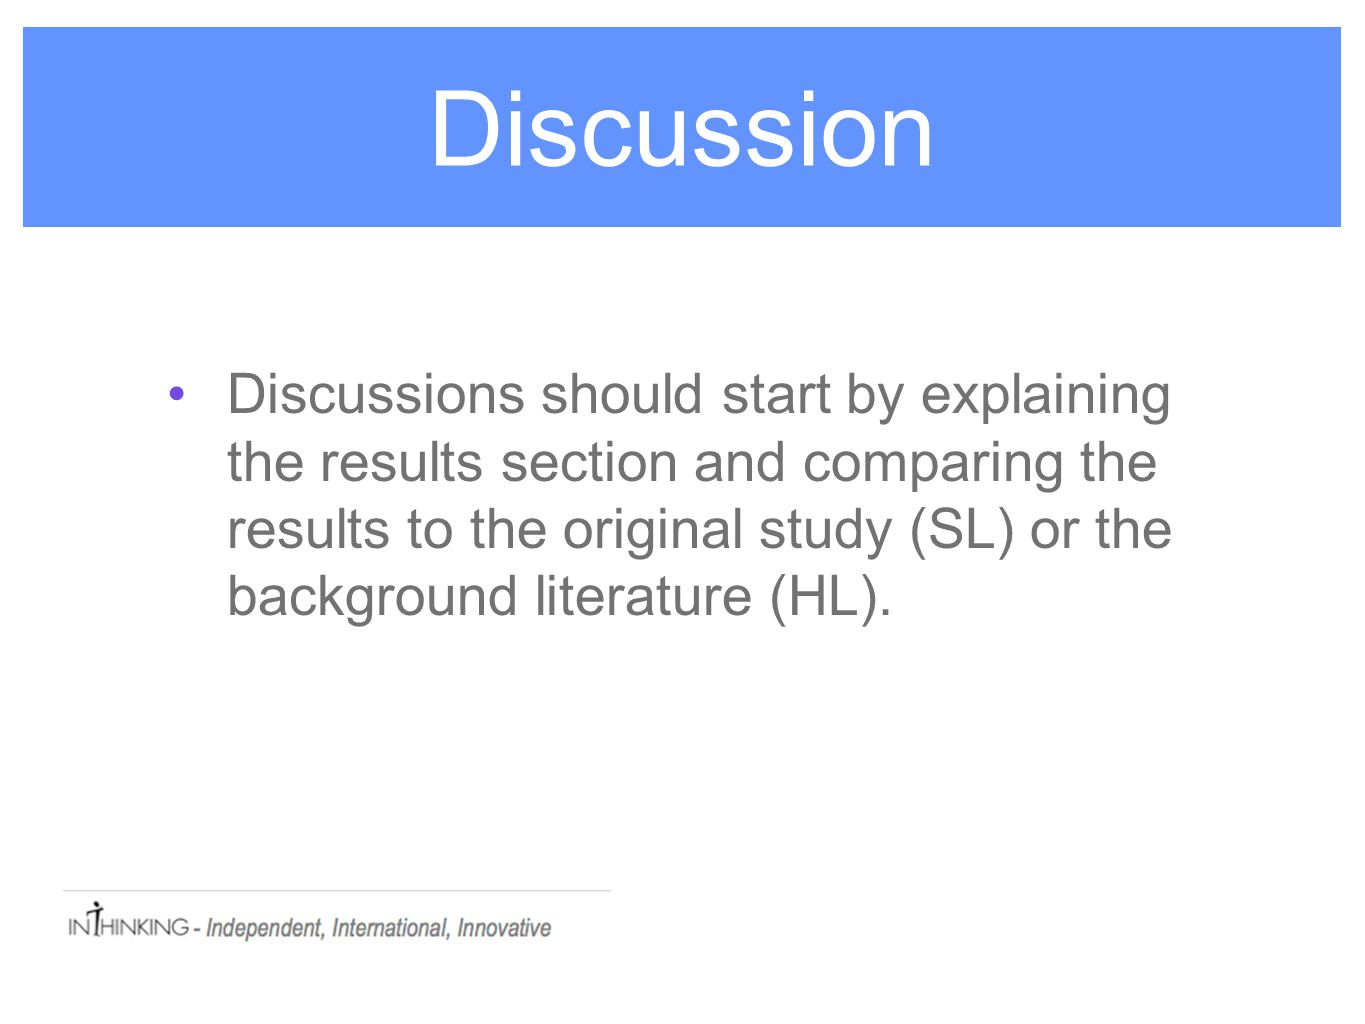 Discussion Discussions should start by explaining the results section and comparing the results to the original study (SL) or the background literature (HL).